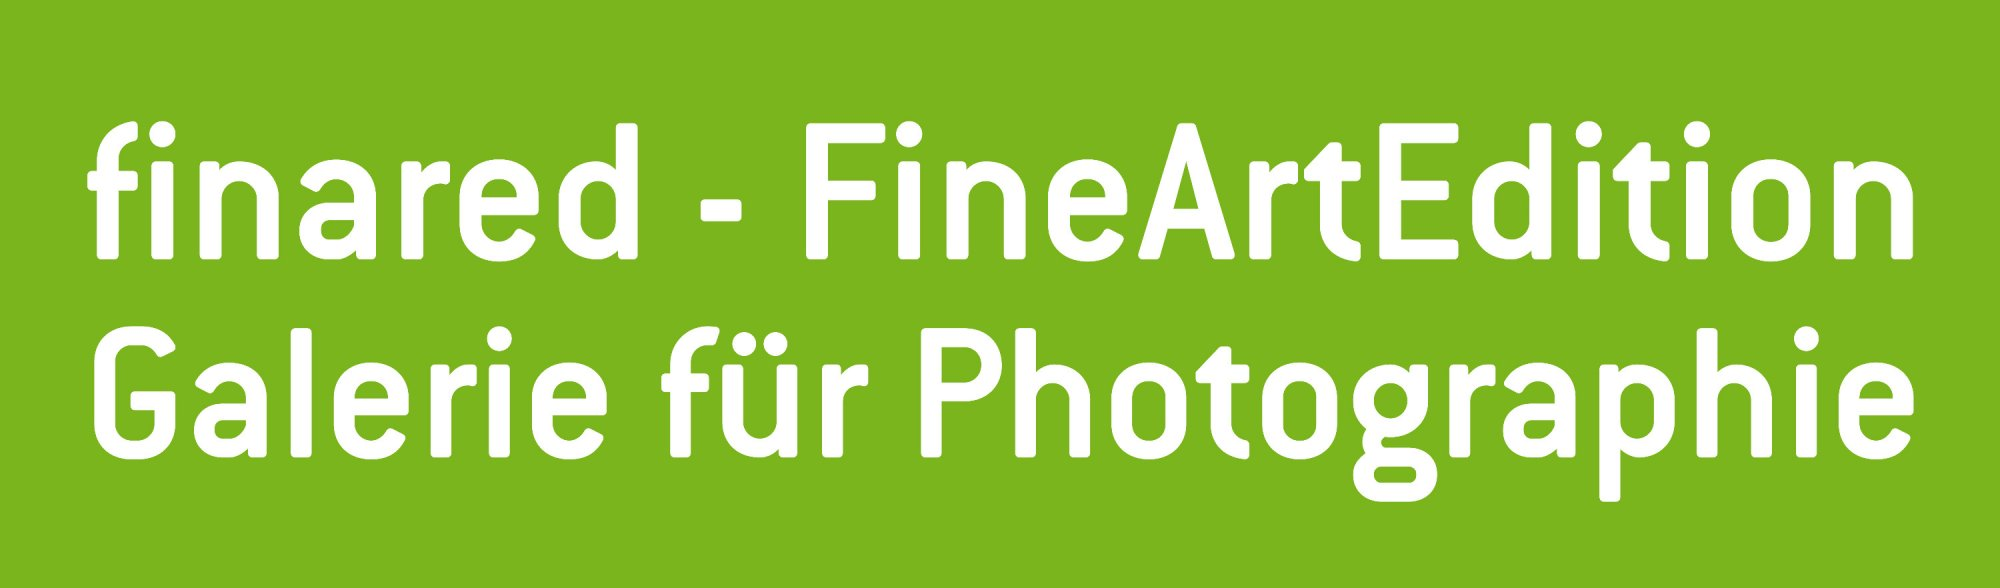 finared-FineArtEdition - Galerie für Photographie